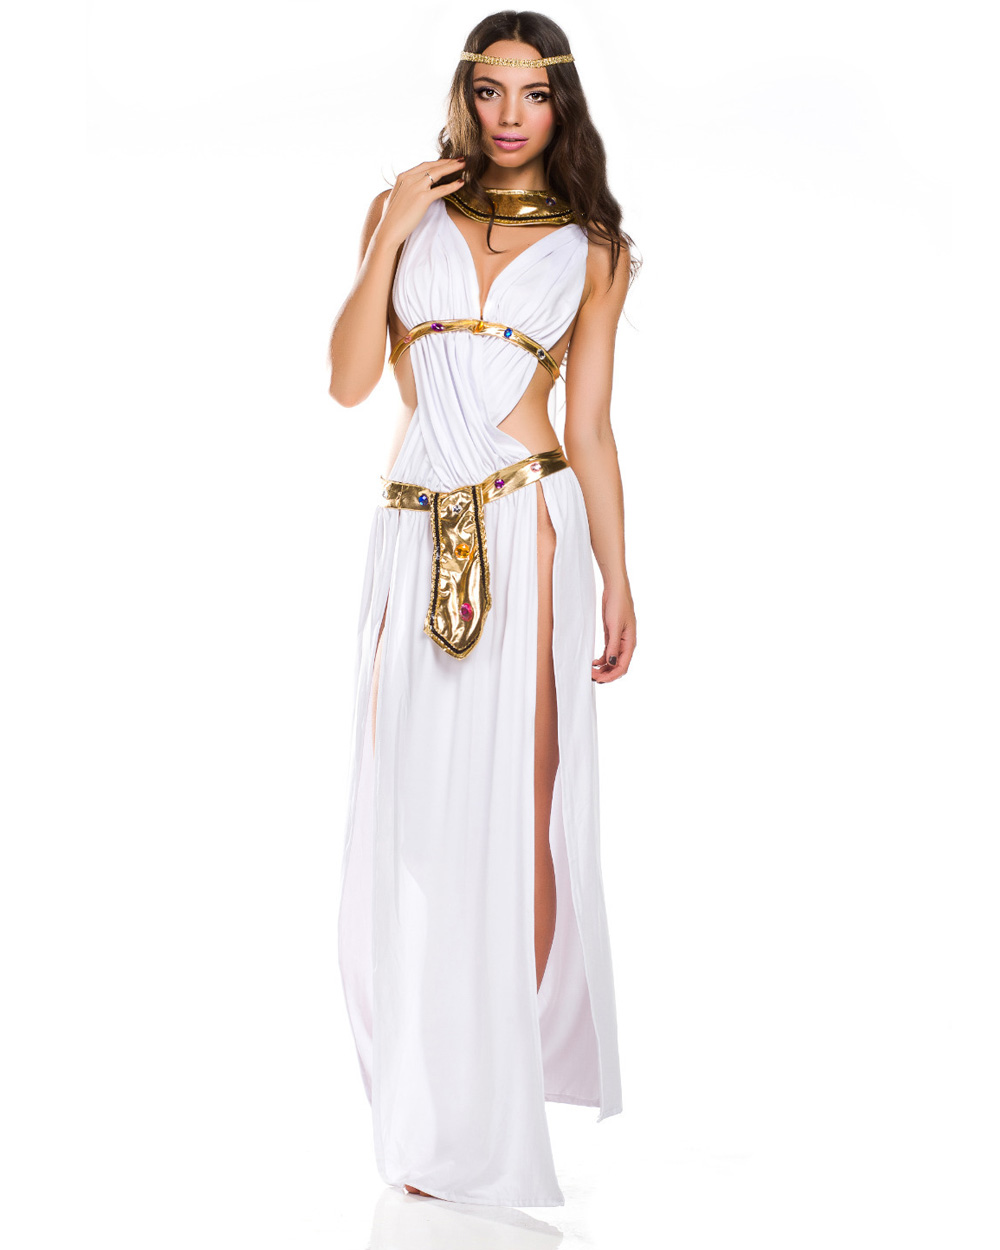 k49 ladies cleopatra roman toga robe greek goddess fancy dress